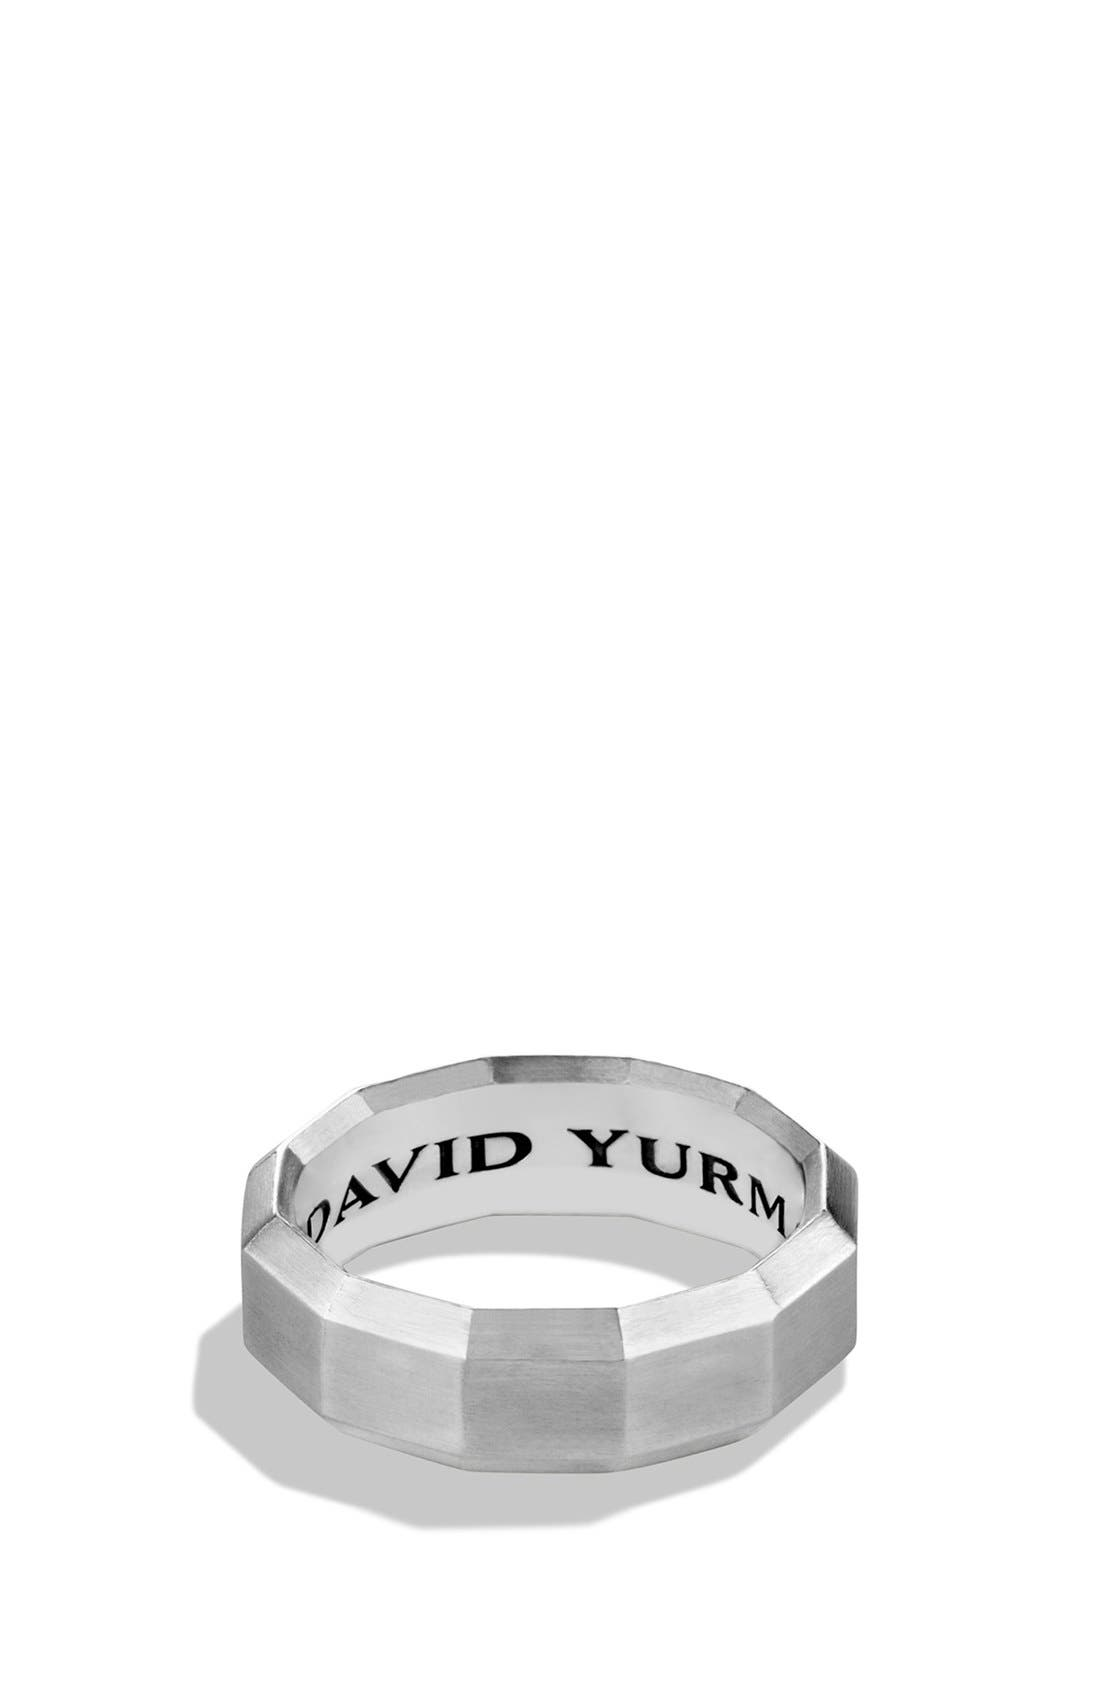 David Yurman 'Faceted Metal' Band Ring